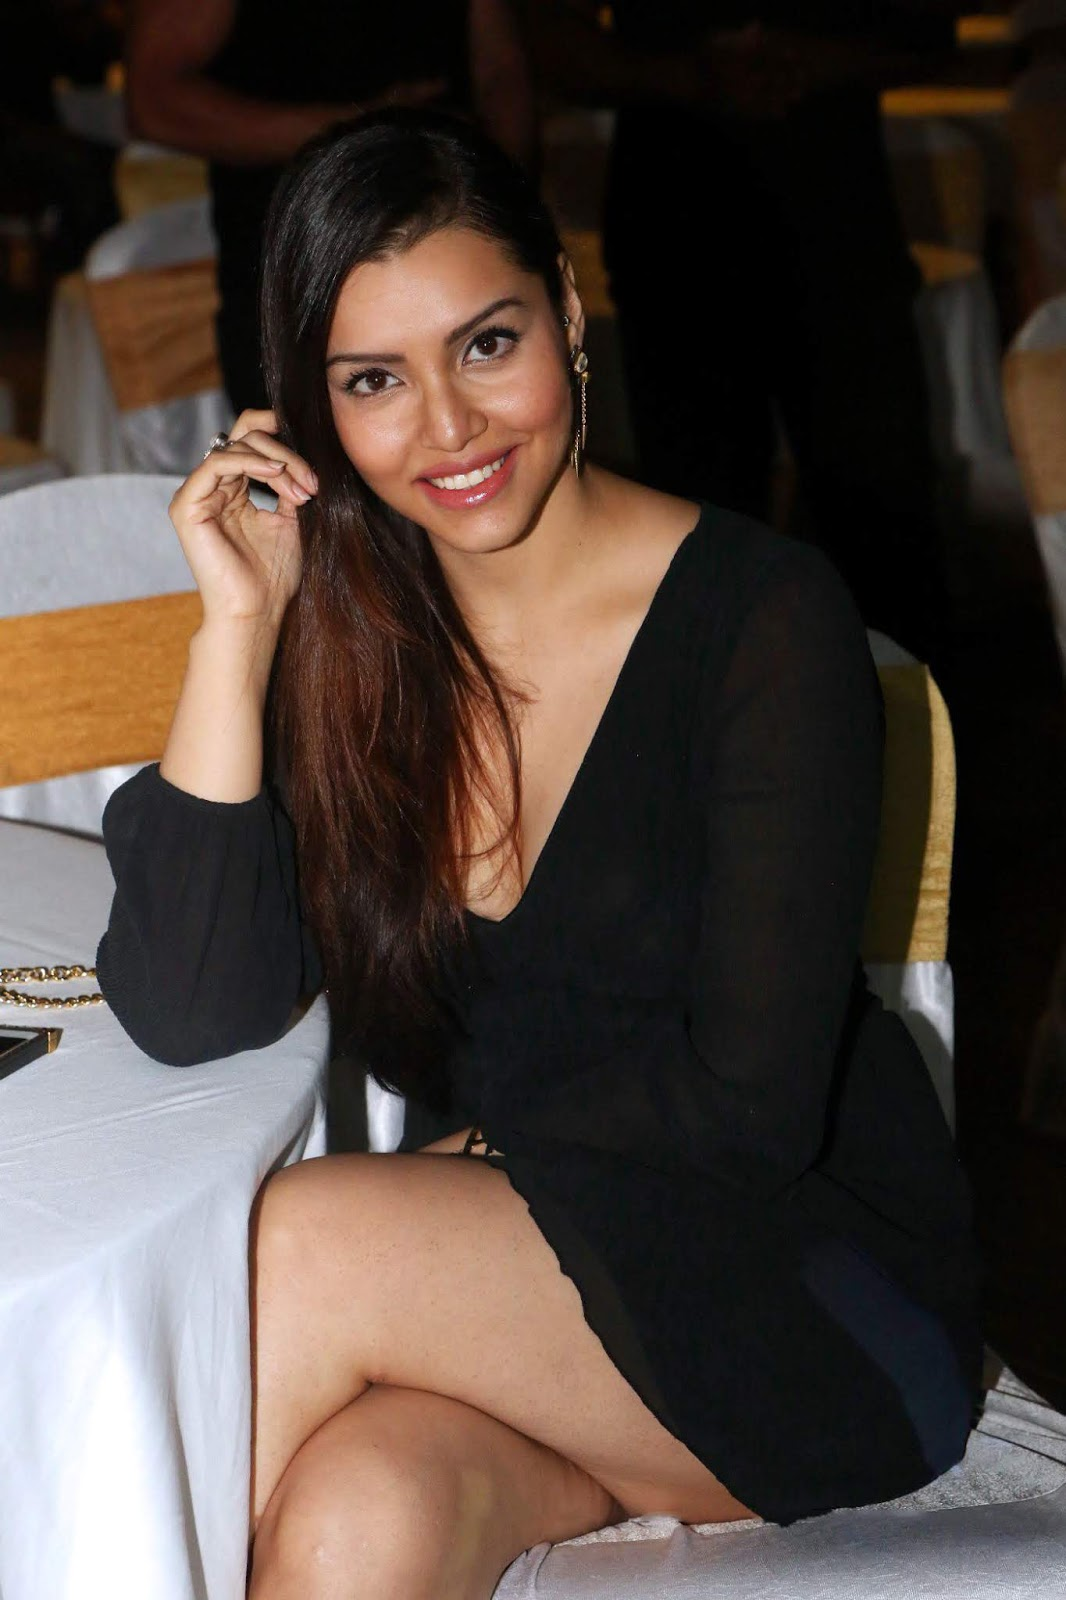 Kyra Dutt in black mini frock skirt sitting crossed legs on a chair